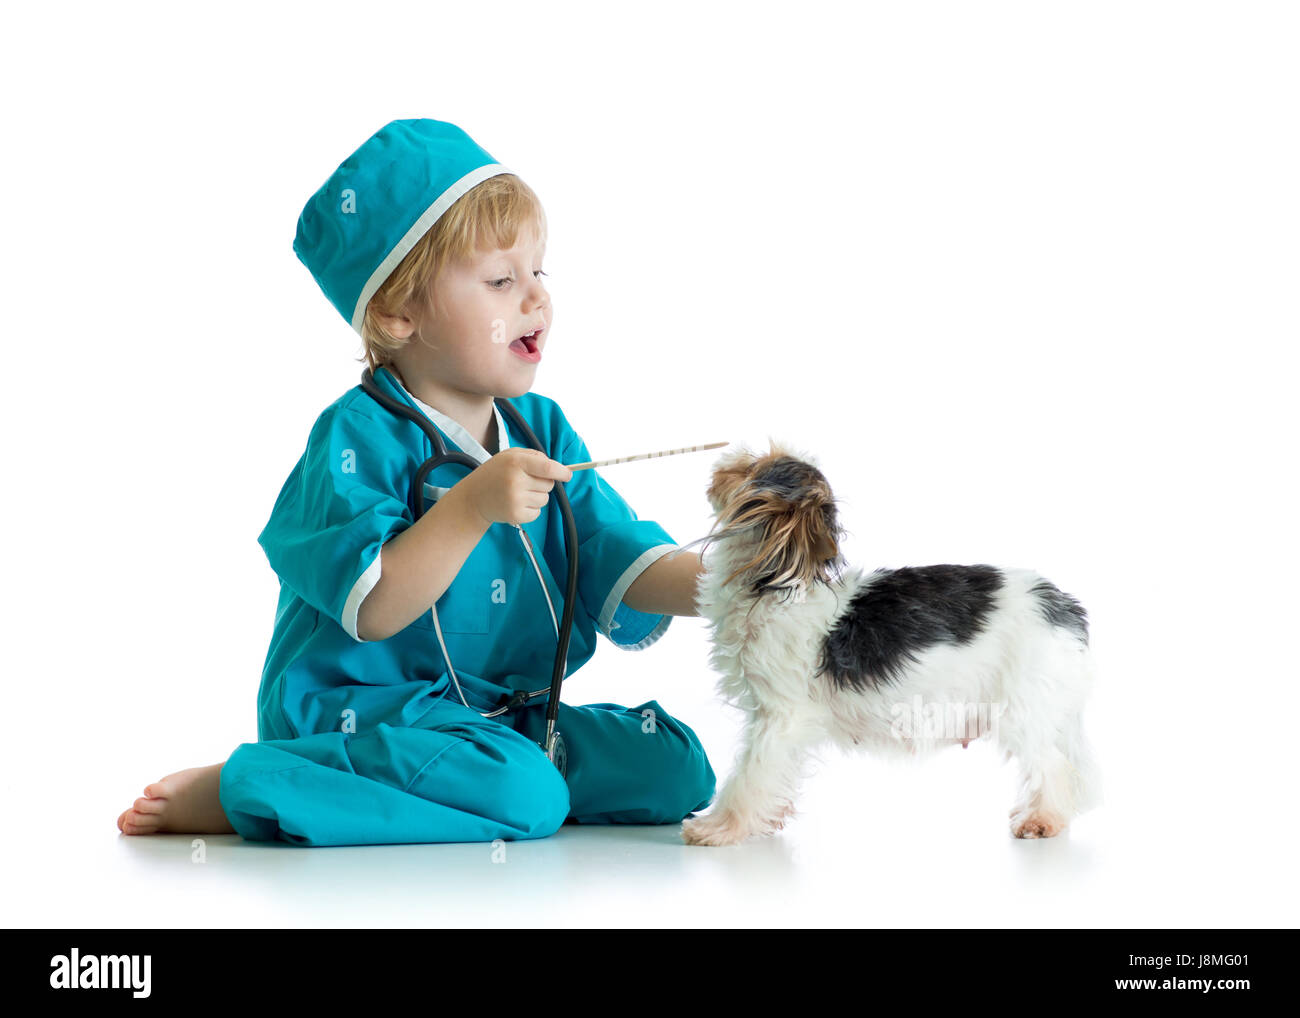 Child weared doctor clothes playing veterinarian with dog - Stock Image